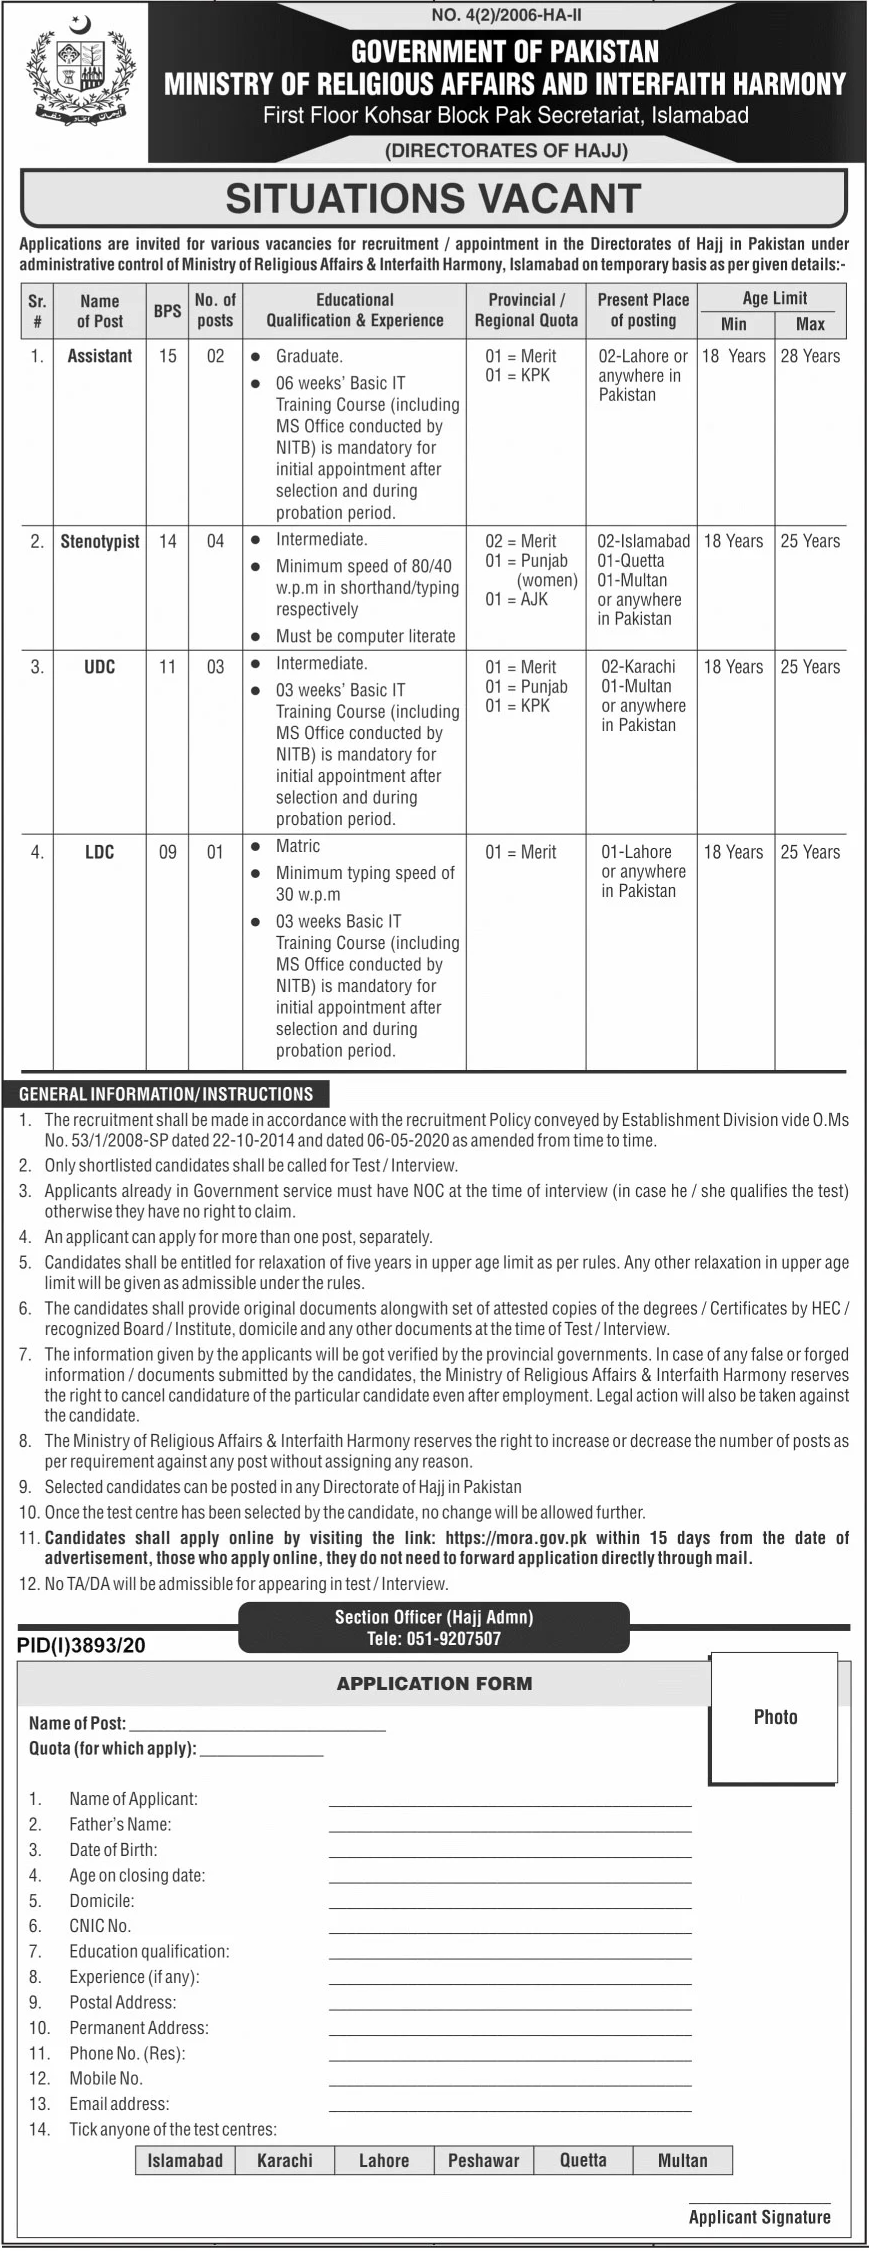 Government of Pakistan Ministry of Religious Affairs and Interfaith Harmony Jobs January 2021